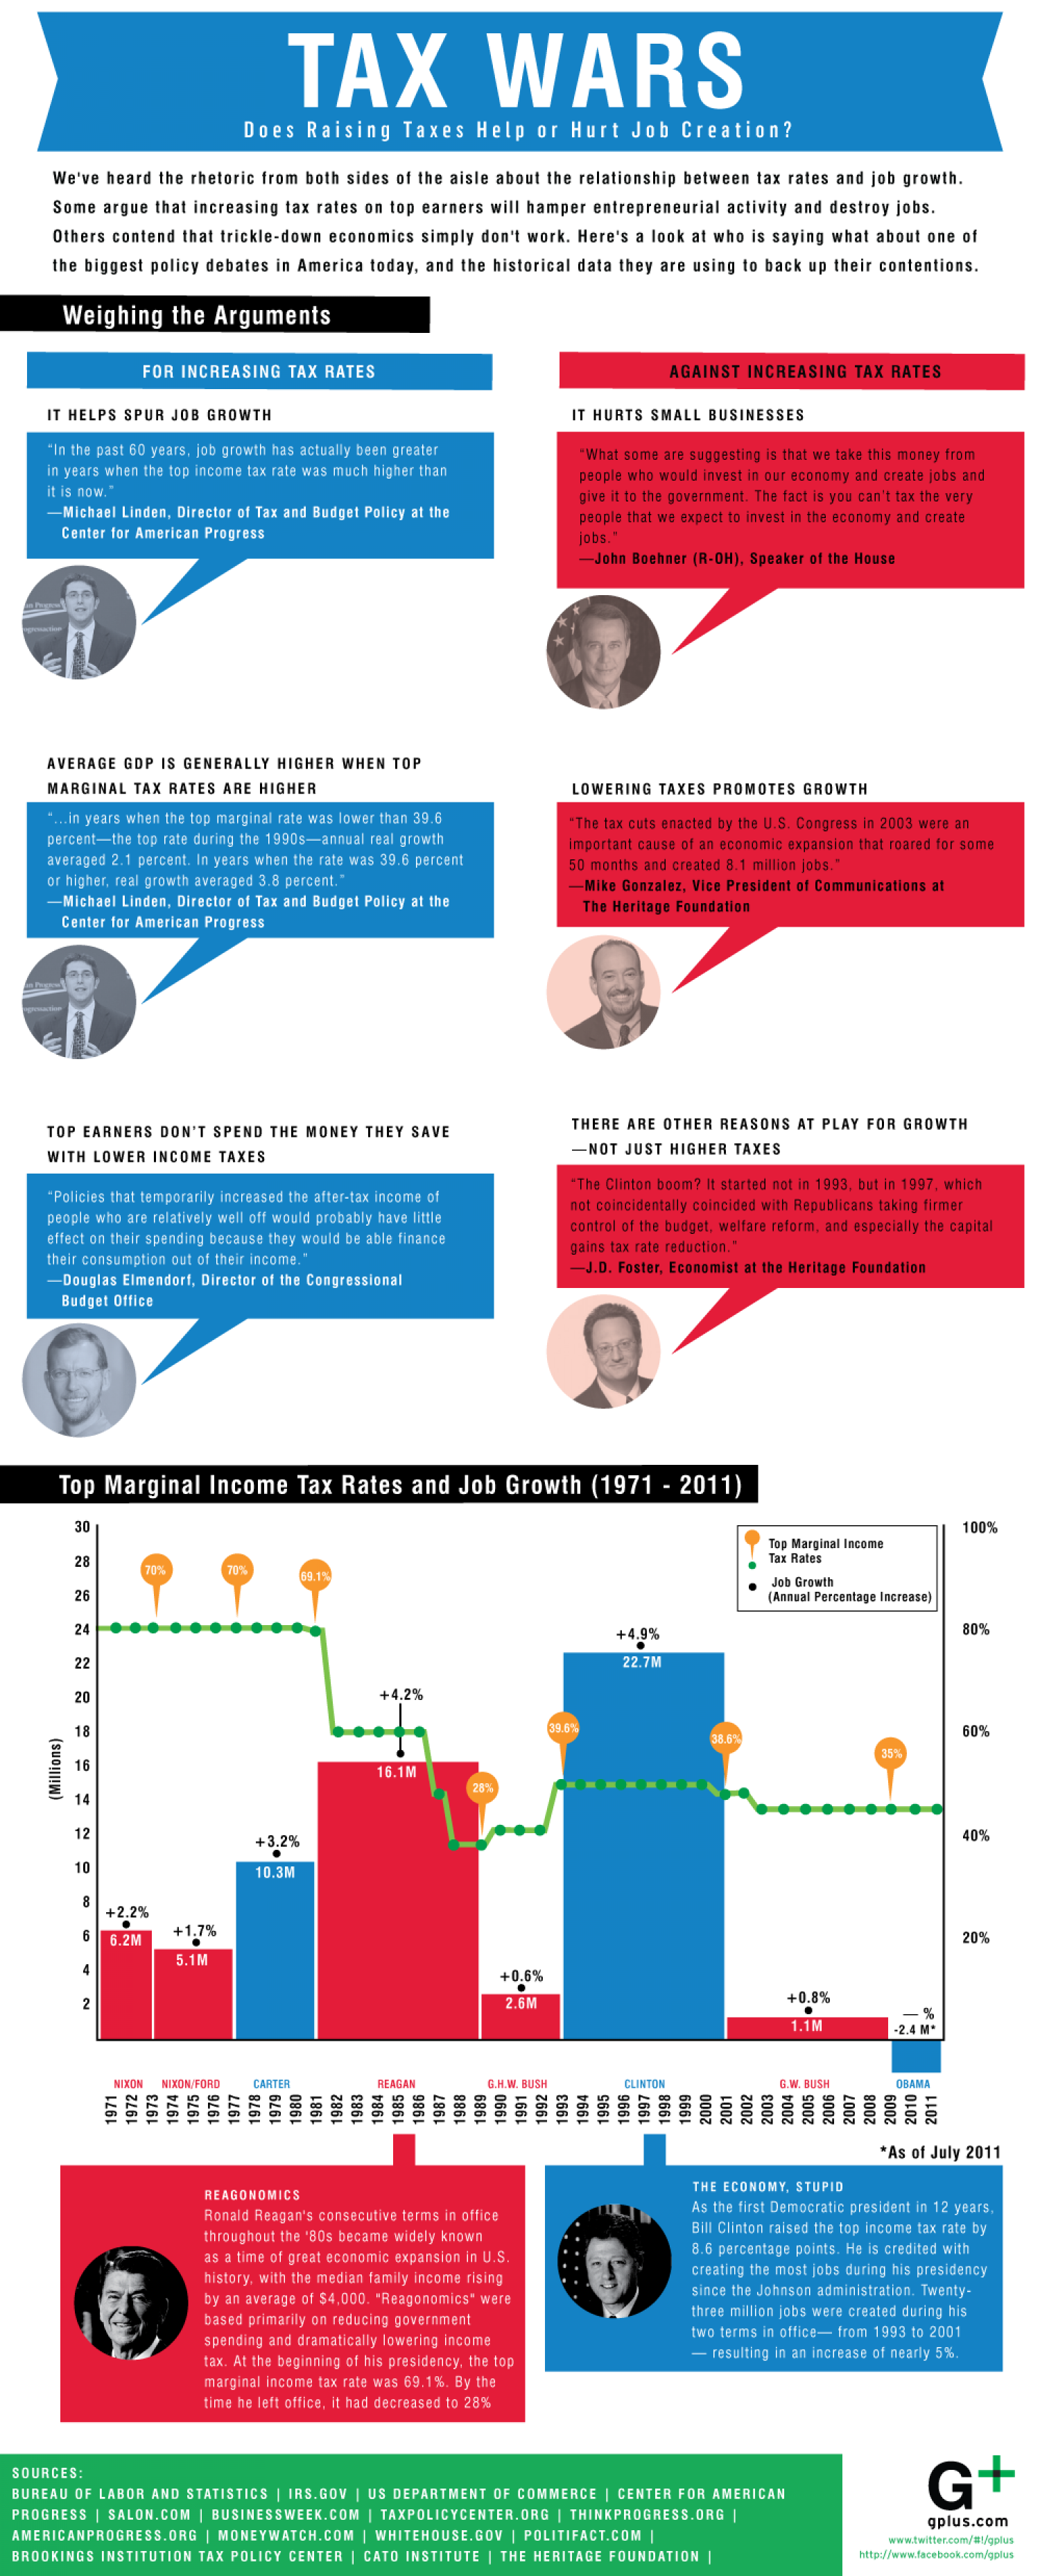 Does Raising Taxes Help or Hurt Job Creation? Infographic